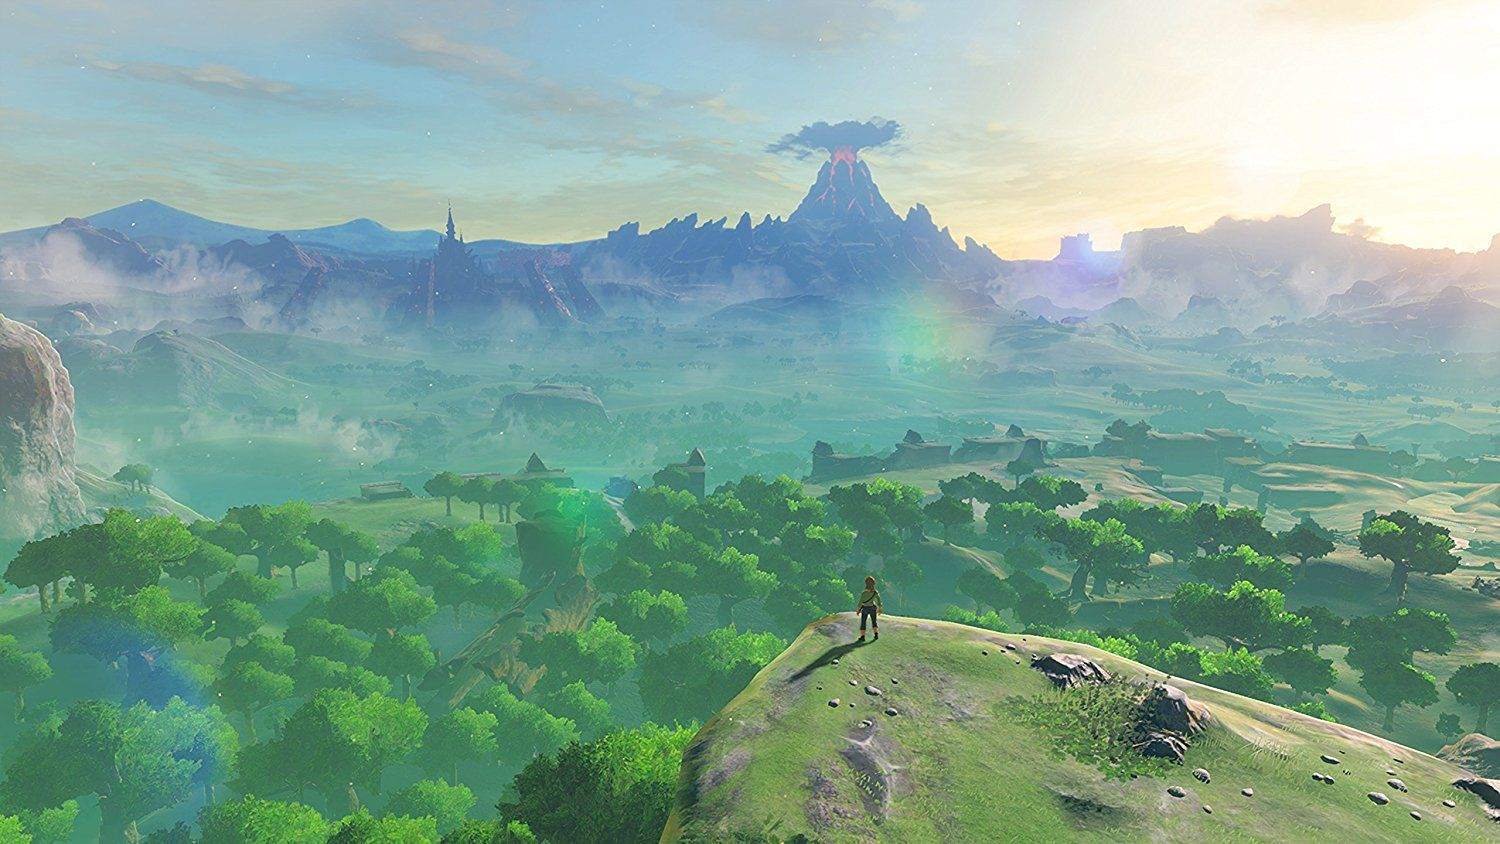 The Legend of Zelda: Breath of the Wild (Nintendo Switch) - 3